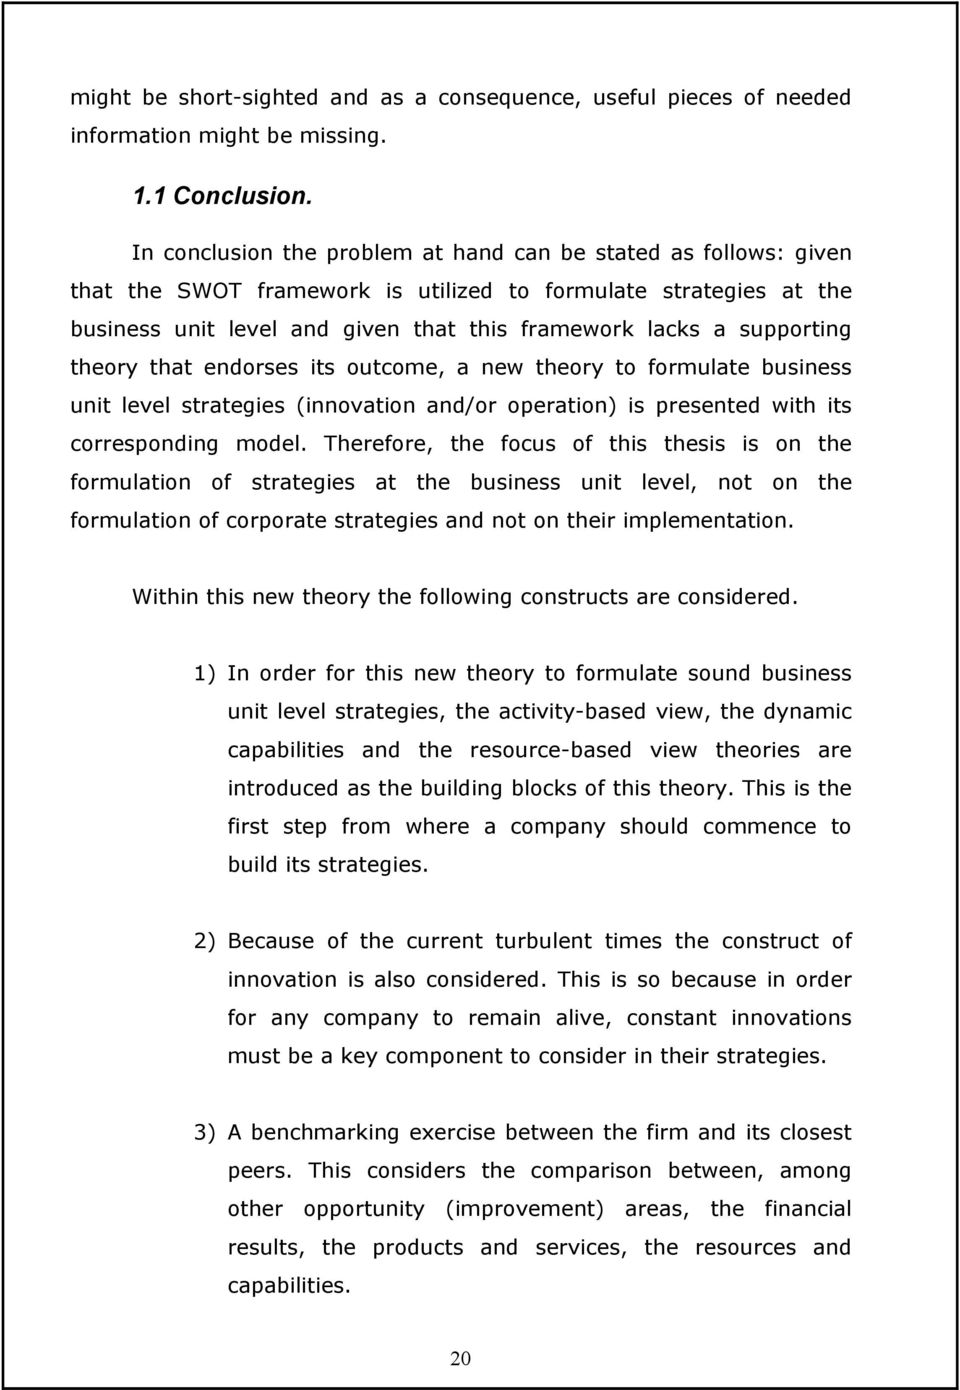 supporting theory that endorses its outcome, a new theory to formulate business unit level strategies (innovation and/or operation) is presented with its corresponding model.